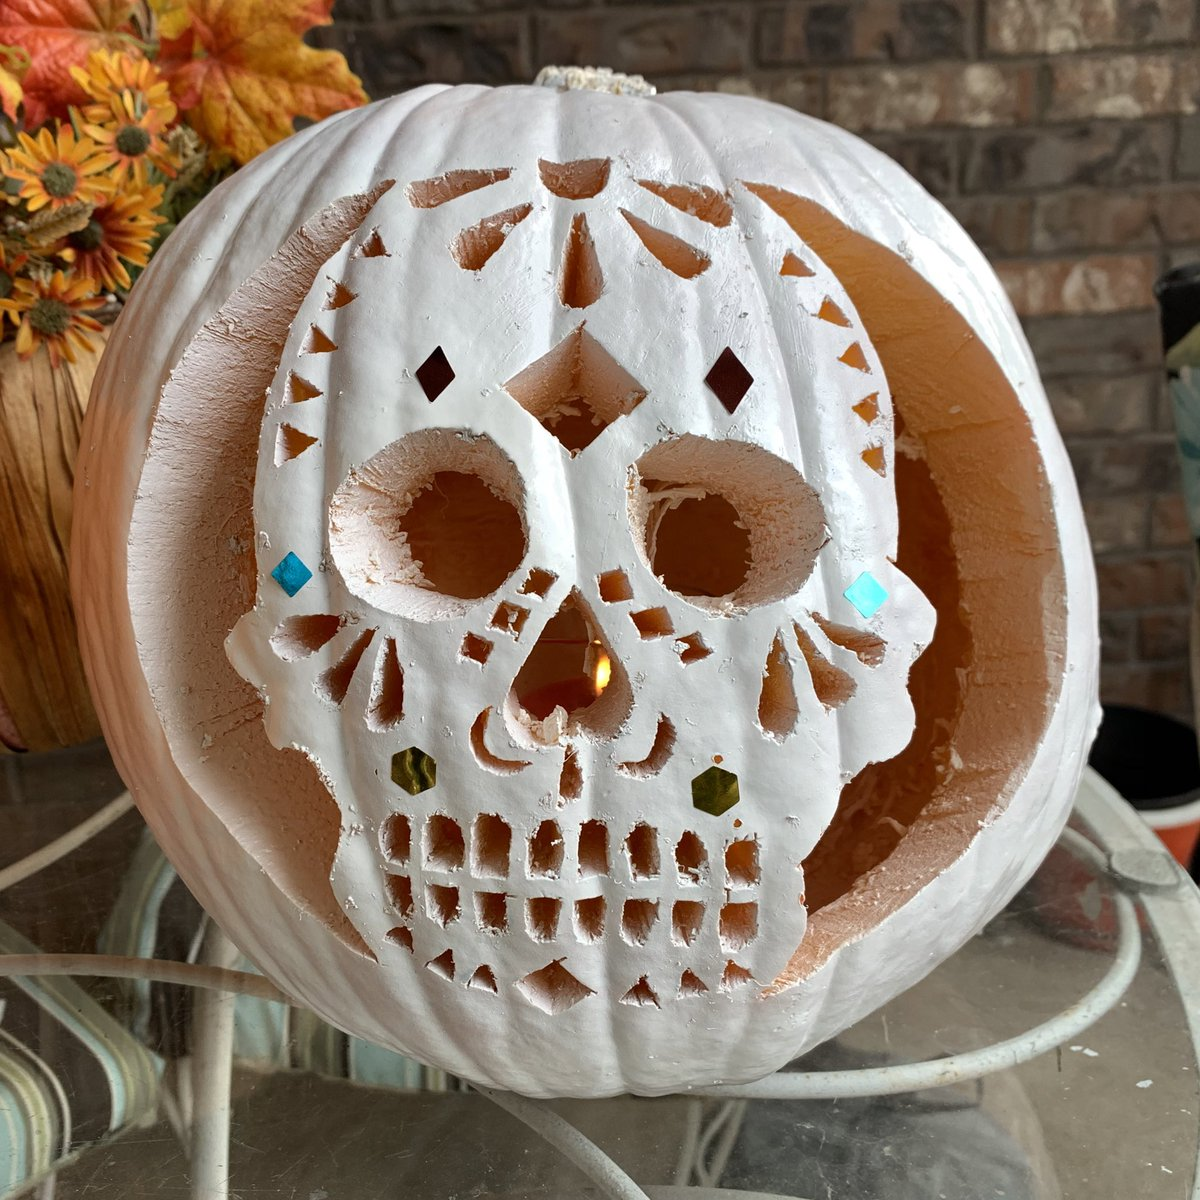 Dia de los Muertos inspired painted jack-o-lantern. Try creating your own painted pumpkin carving this Halloween.   More ideas here: https://t.co/03uA4dzE9v  #pumkincarving #jackolantern #ExploreLifeToday #halloween2020 #halloweencrafts #Halloween #HalloweenArt #spooky https://t.co/HTWcqTq42i